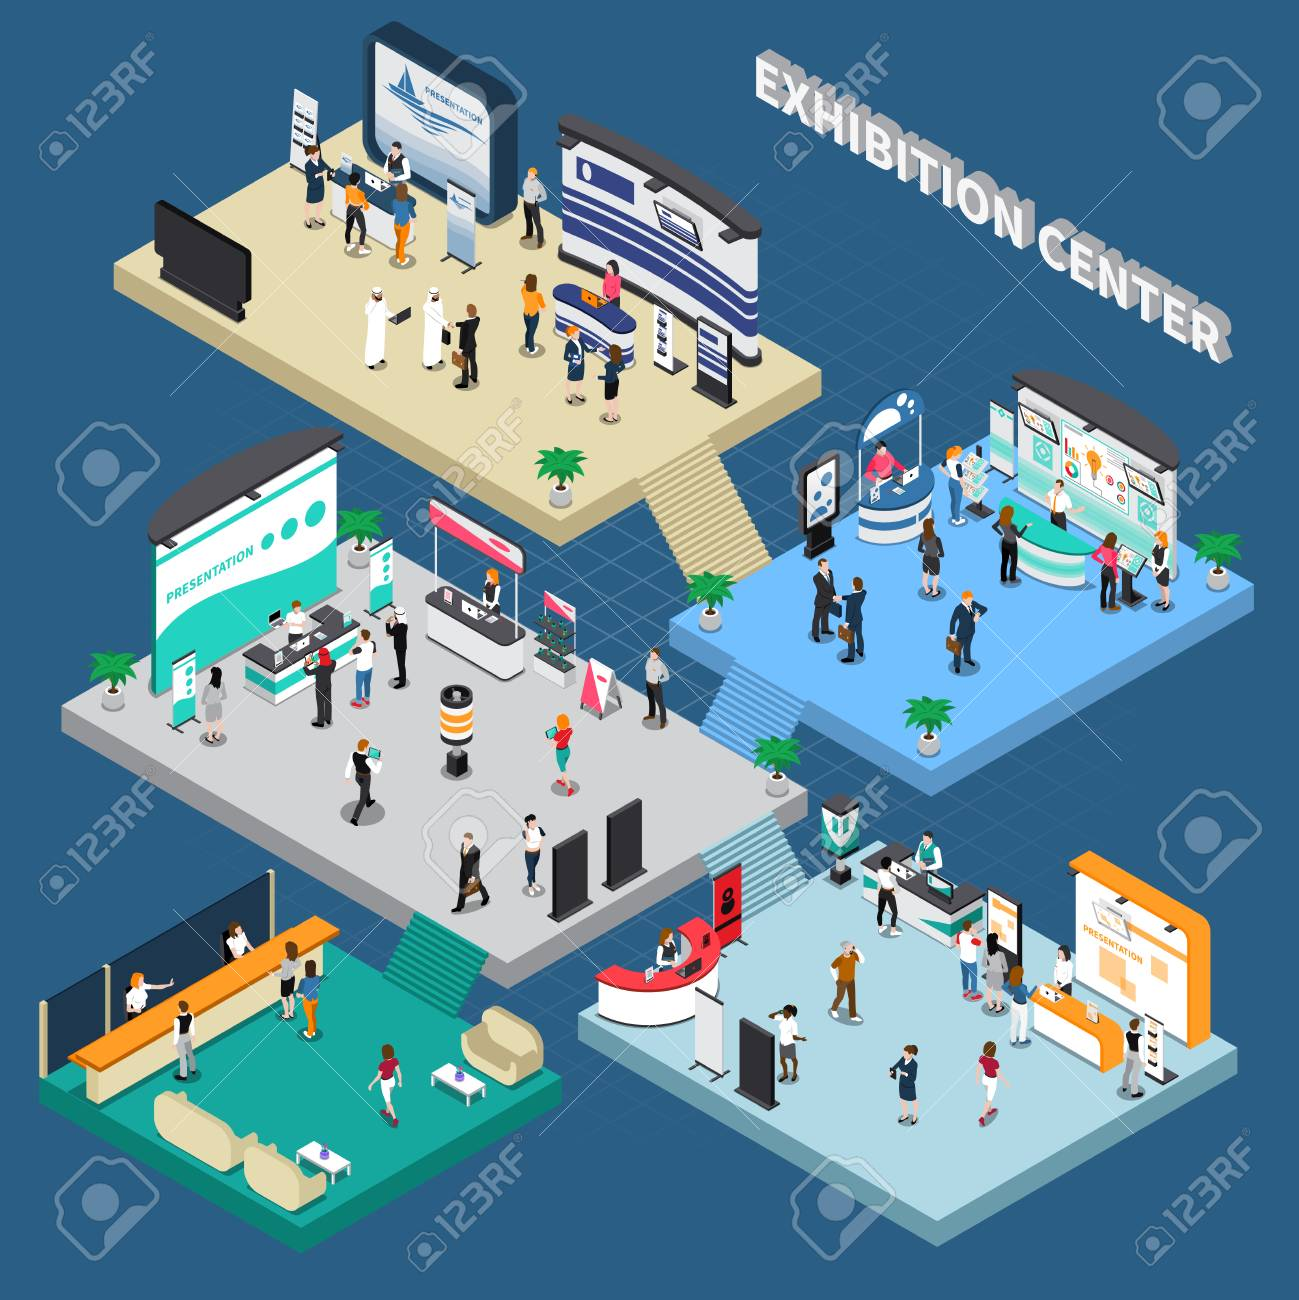 Multistory exhibition center isometric composition on blue background with exposition stands, business people, vector illustration - 95660740